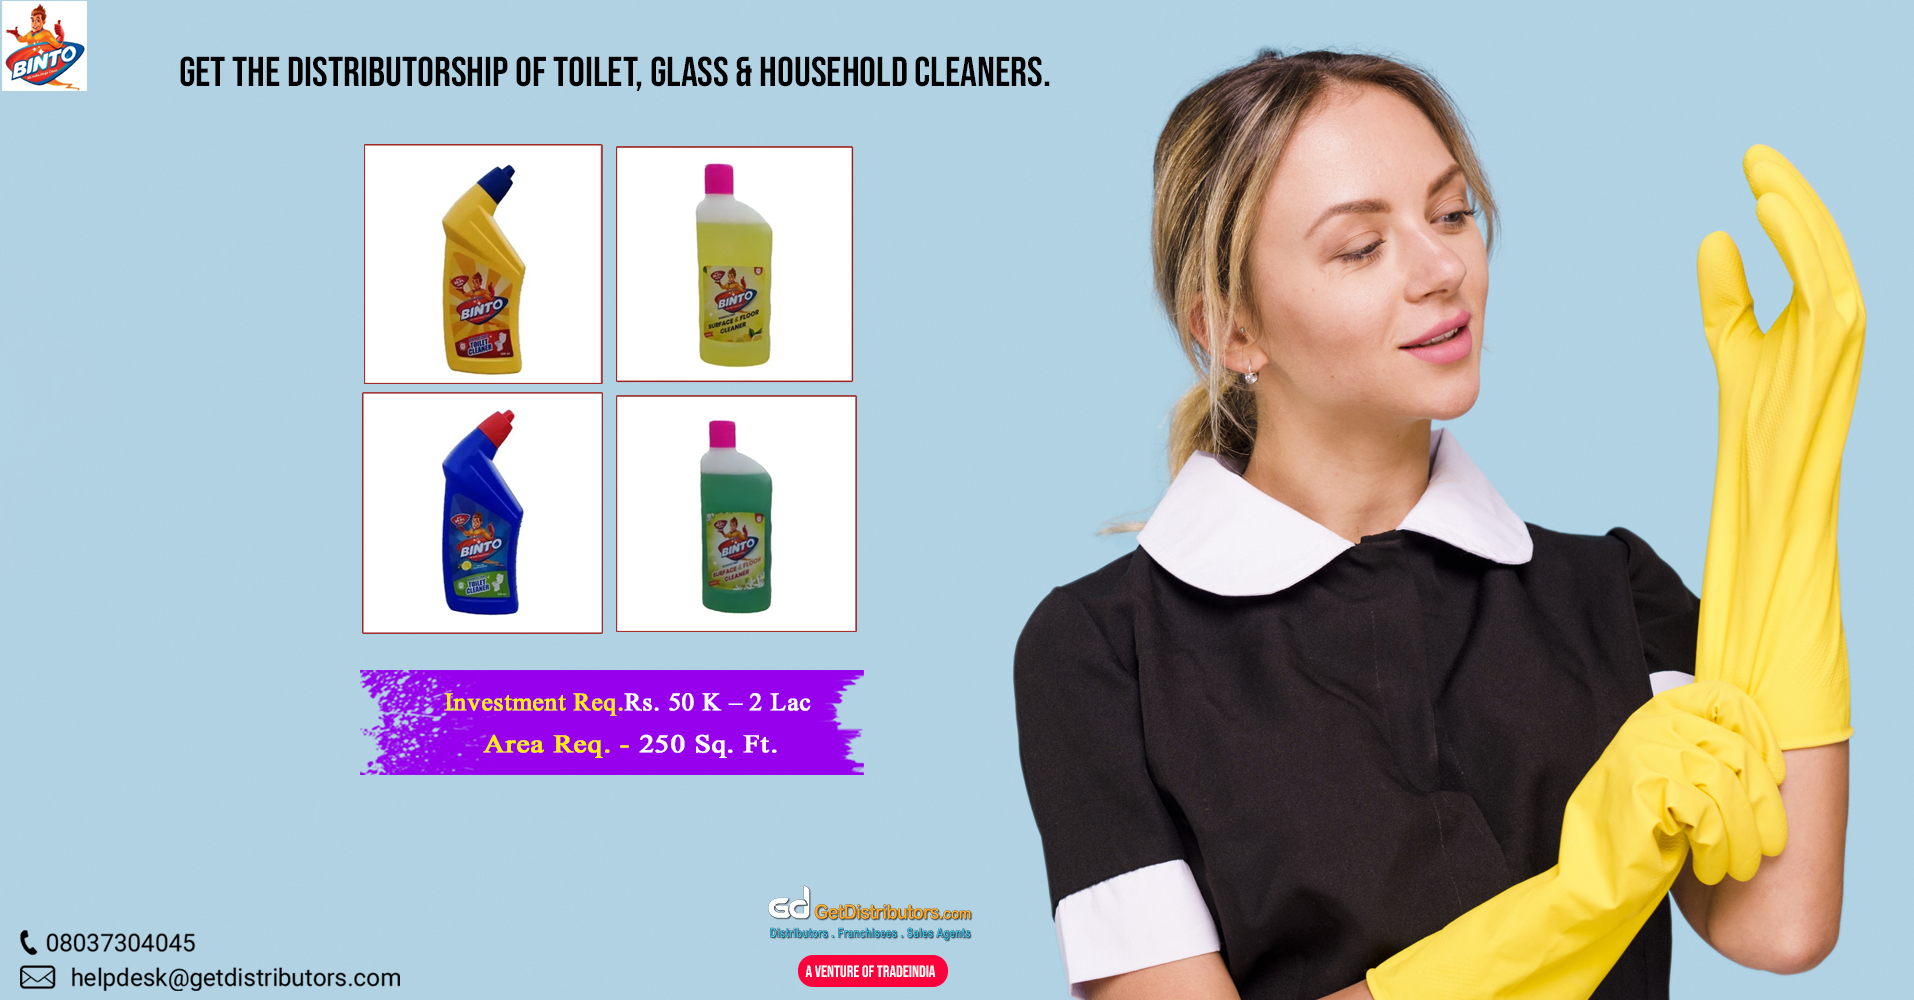 Glass & Household Cleaner, Disinfectant Toilet Cleaner, and a lot more for distribution